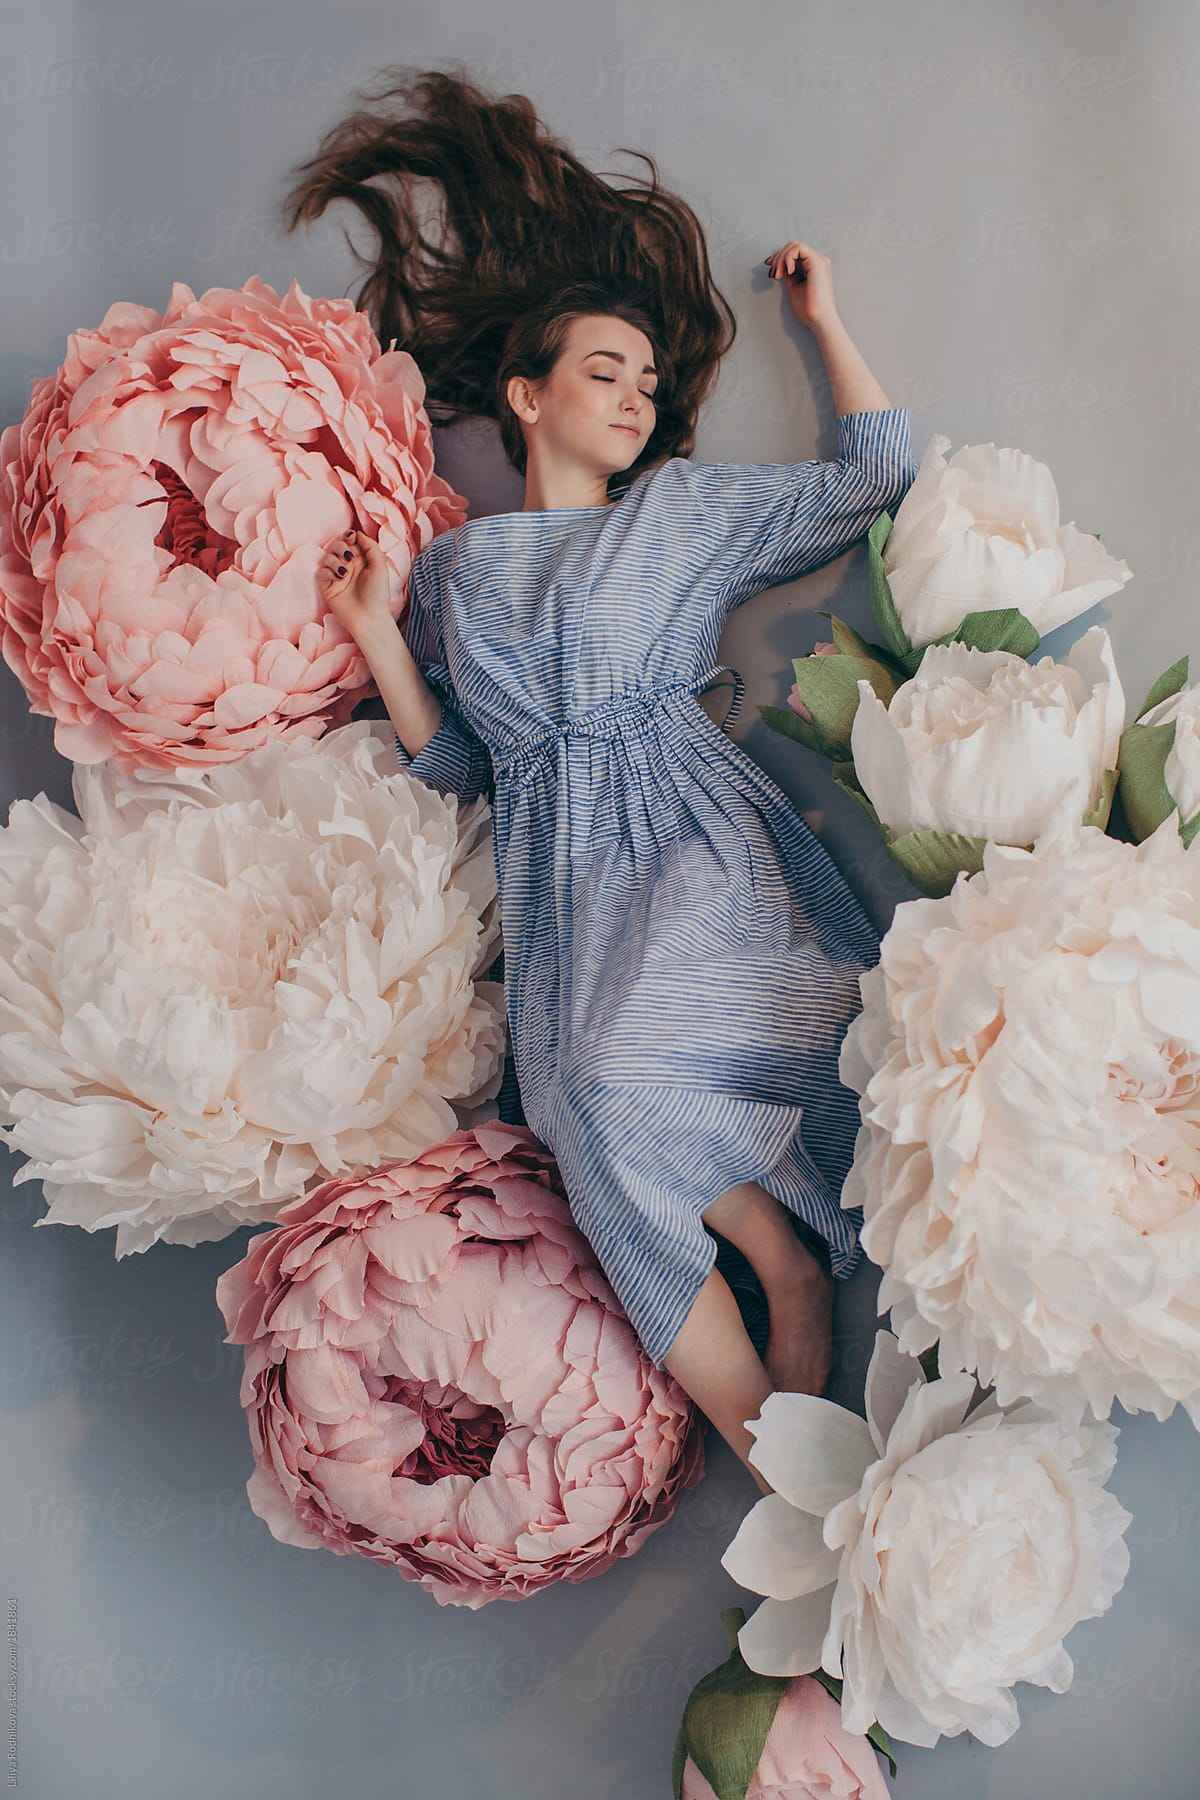 From above dreamy portrait of sleeping girl with long beautiful hair from above dreamy portrait of sleeping girl with long beautiful hair among the big paper peonies izmirmasajfo